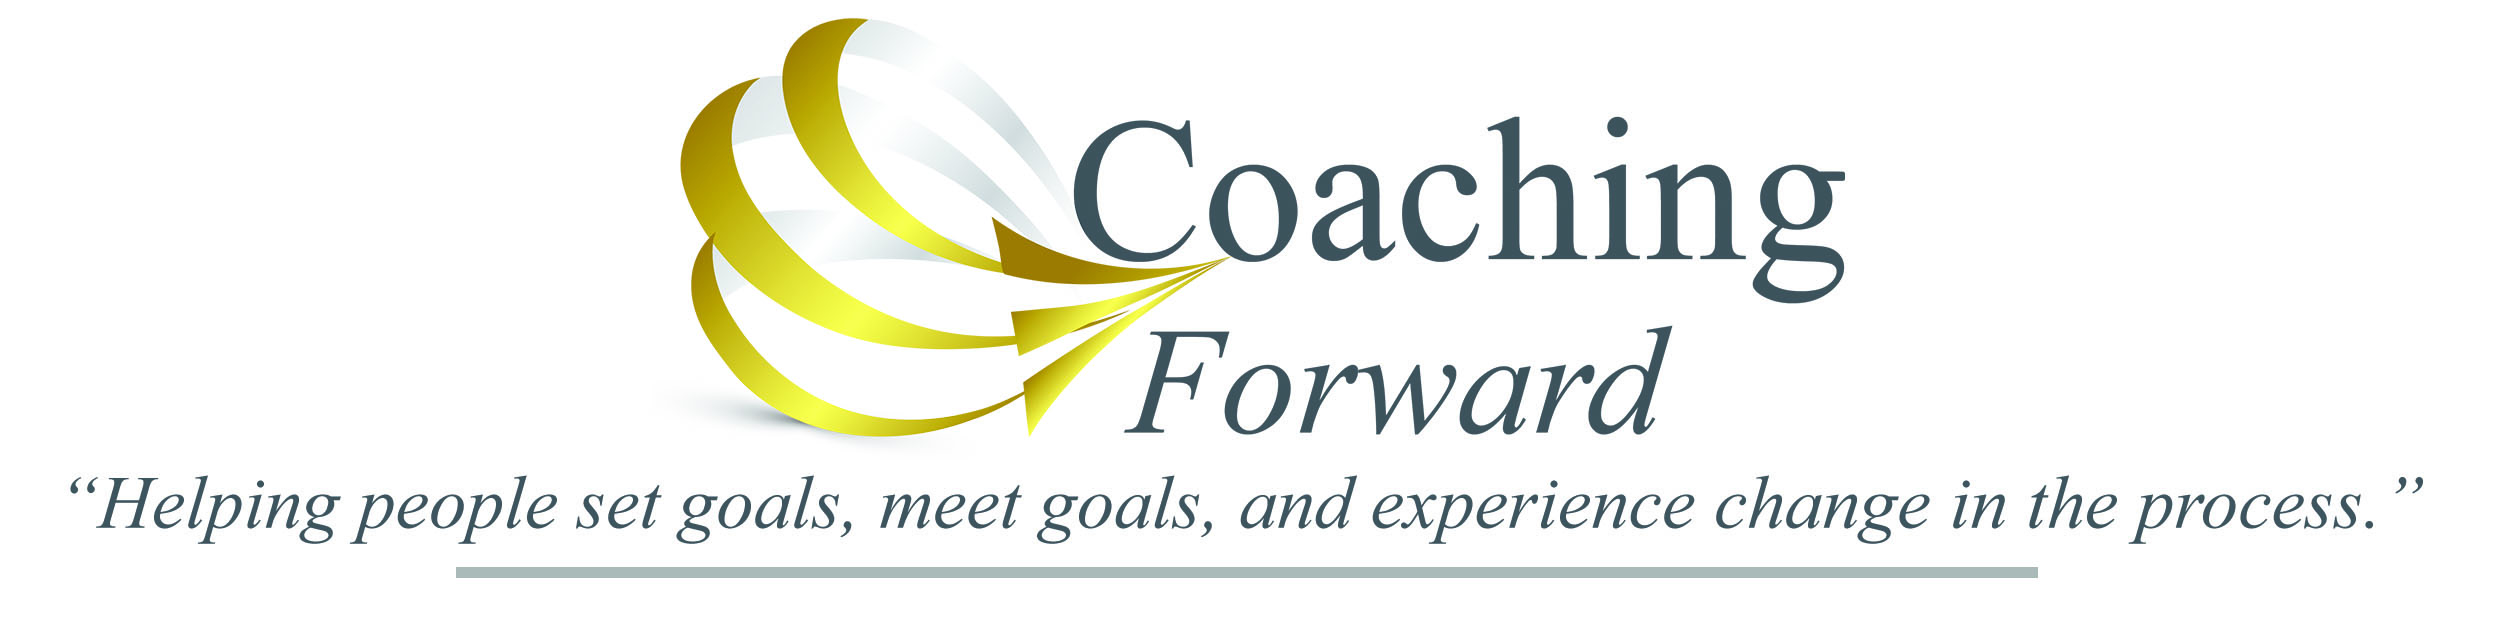 Coaching Forward